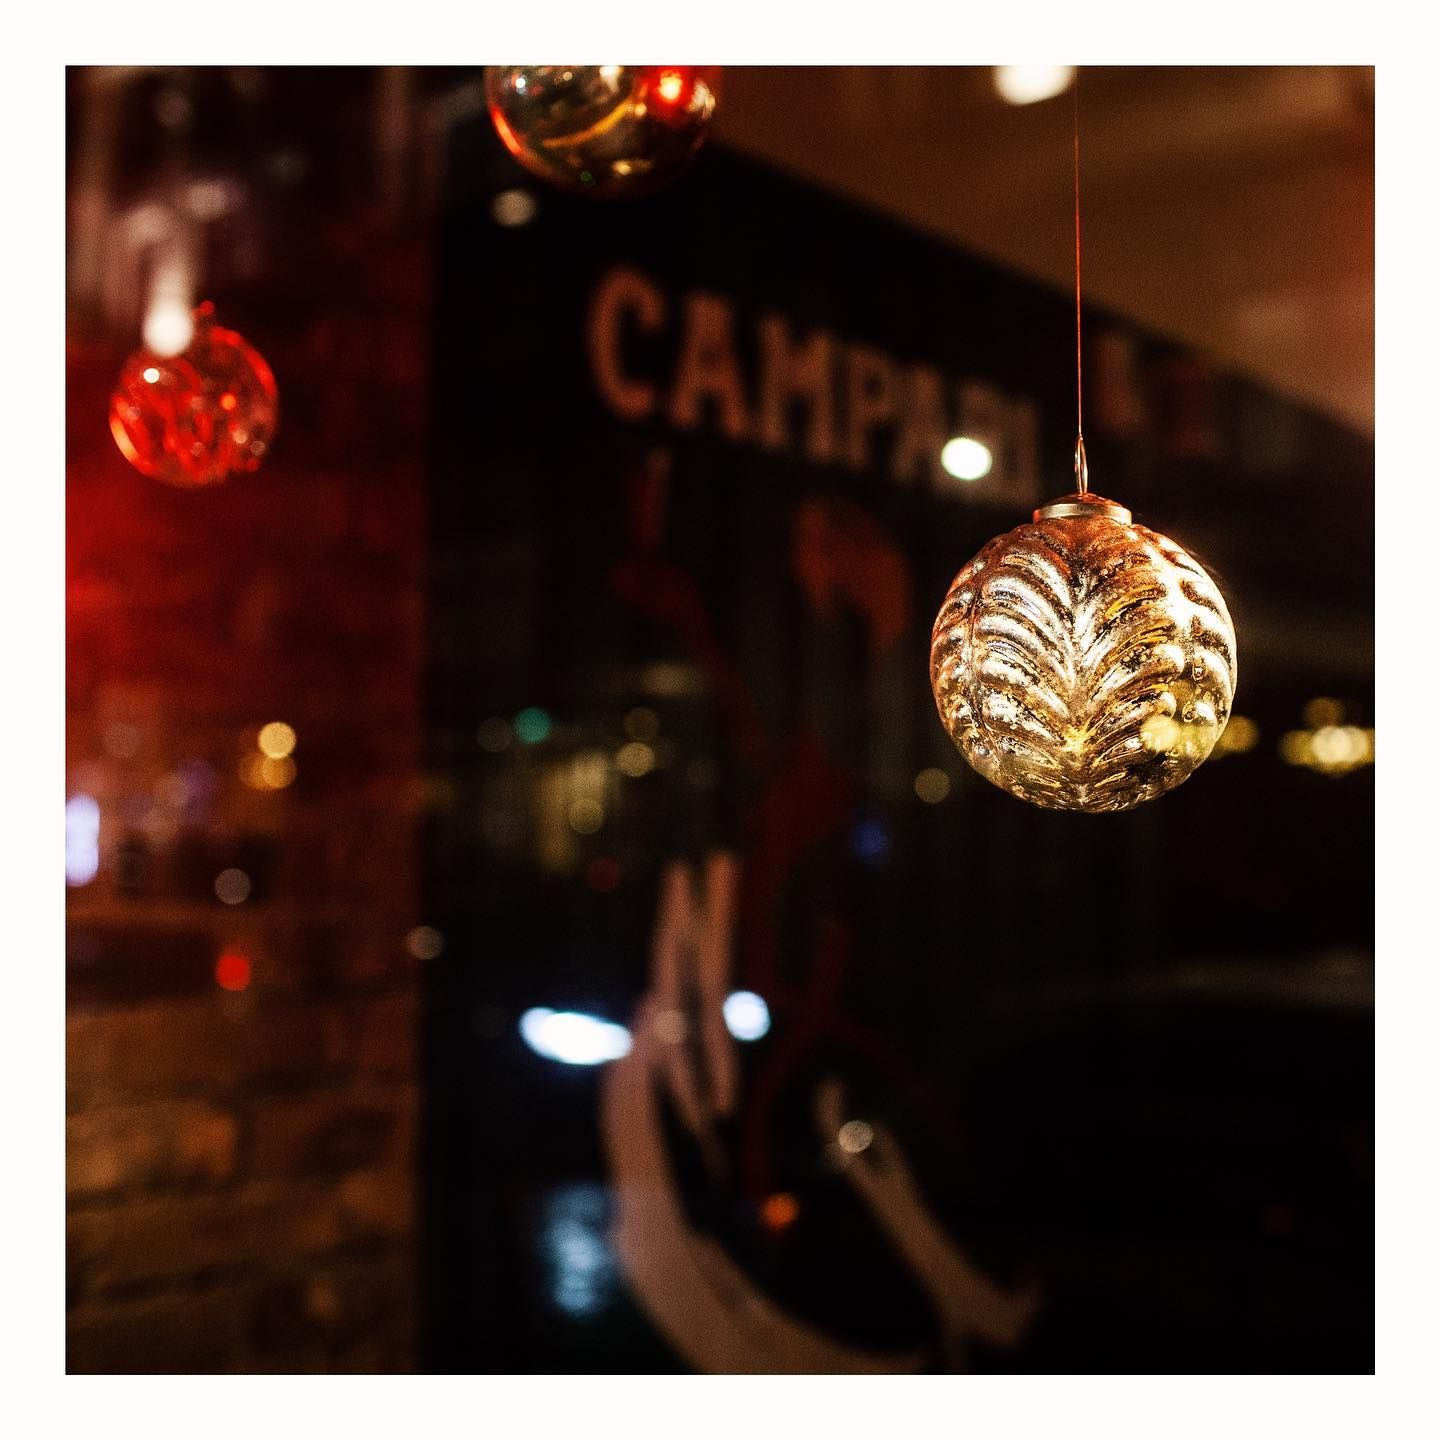 We're feeling festive. 🥳 And excited about 11th Dec & our collab with @campari.scotland  #N100 #negronisforlife #shinyballs 📷: @inglisphoto . . . . . . #heypalu 👋🐦🍸 #modernitalianbar  #edinburghbloggers #edinburghlife #edinburghstory #edinburghhighlights #thediscoverer #cocktailsbars #cocktailblog #cocktailbloggers #cocktailhour  #aperitivo #hiddenedinburgh